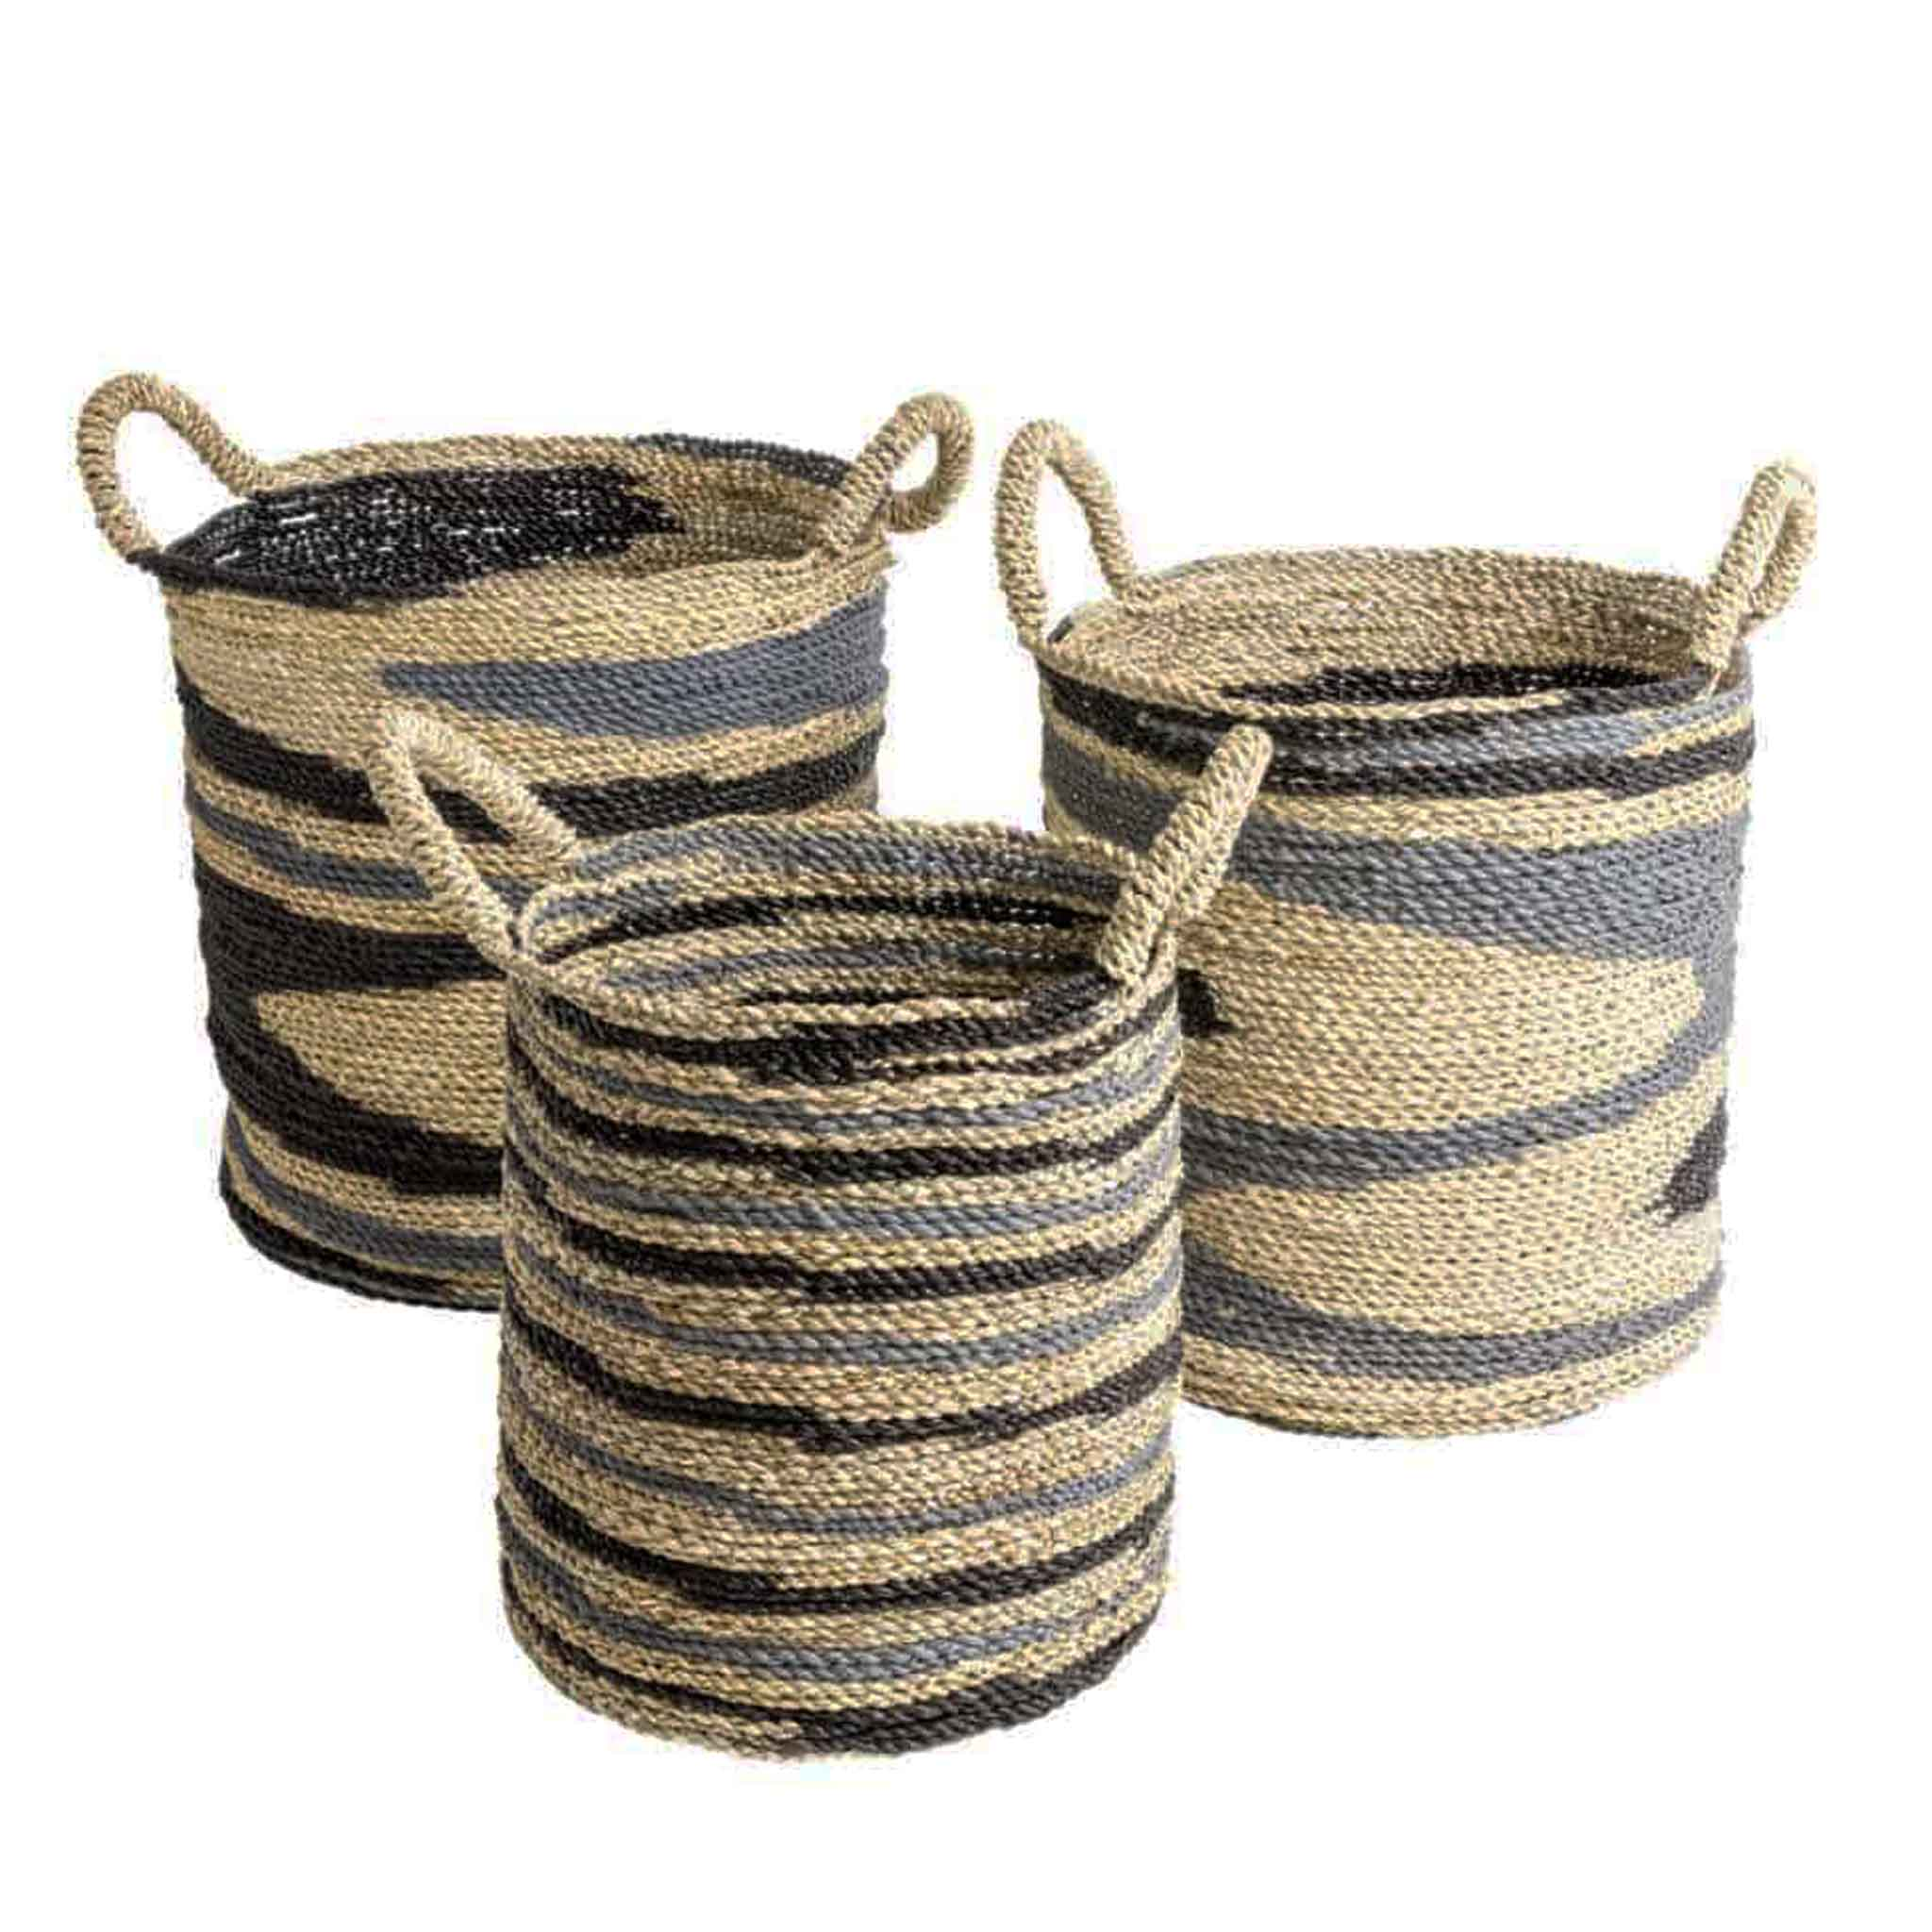 Ikat Seagrass Baskets - 3 Sizes - Unik by Nature